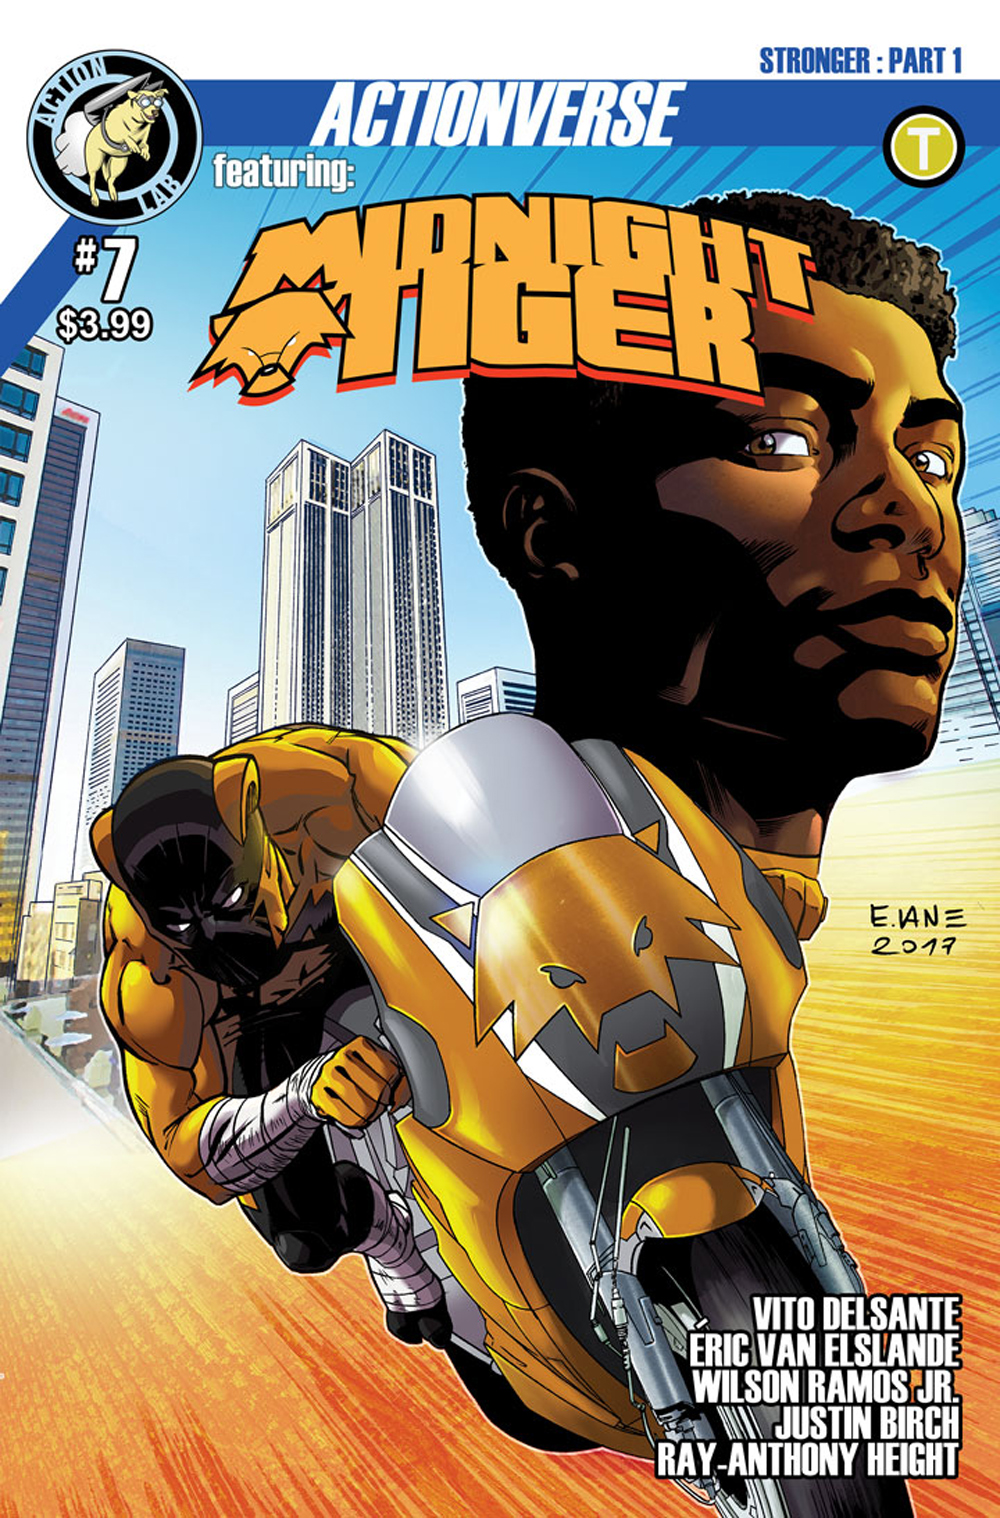 Actionverse #7 Featuring Midnight Tiger Cover A.jpg